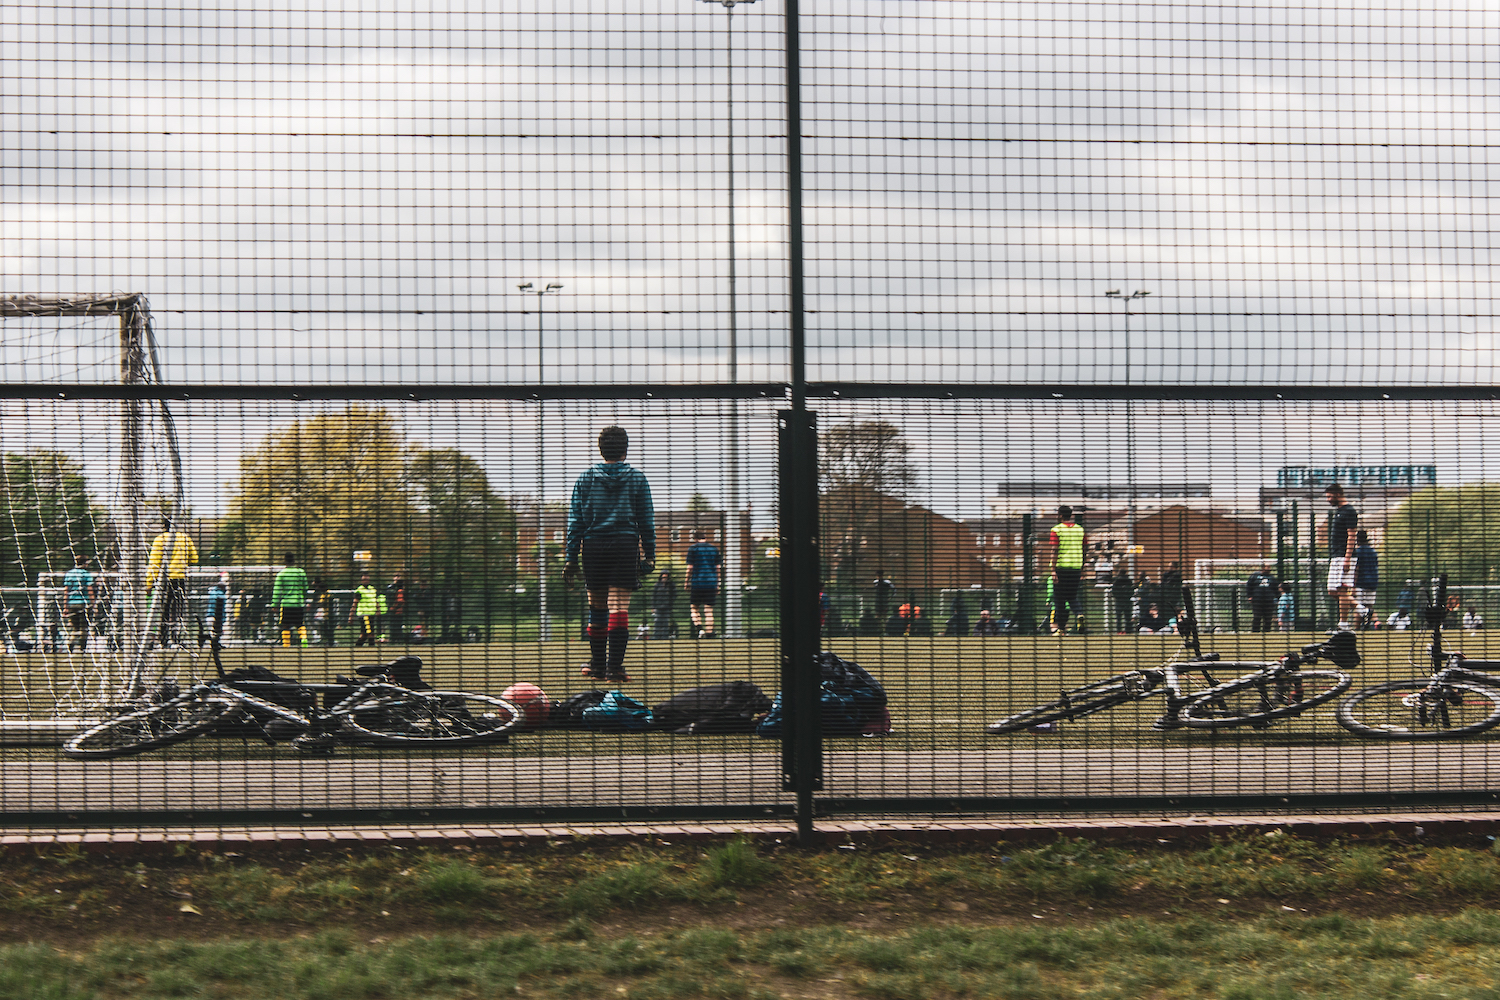 Professional Photography Male Goalkeeper Behind Fence On Football Pitch Playing A Game